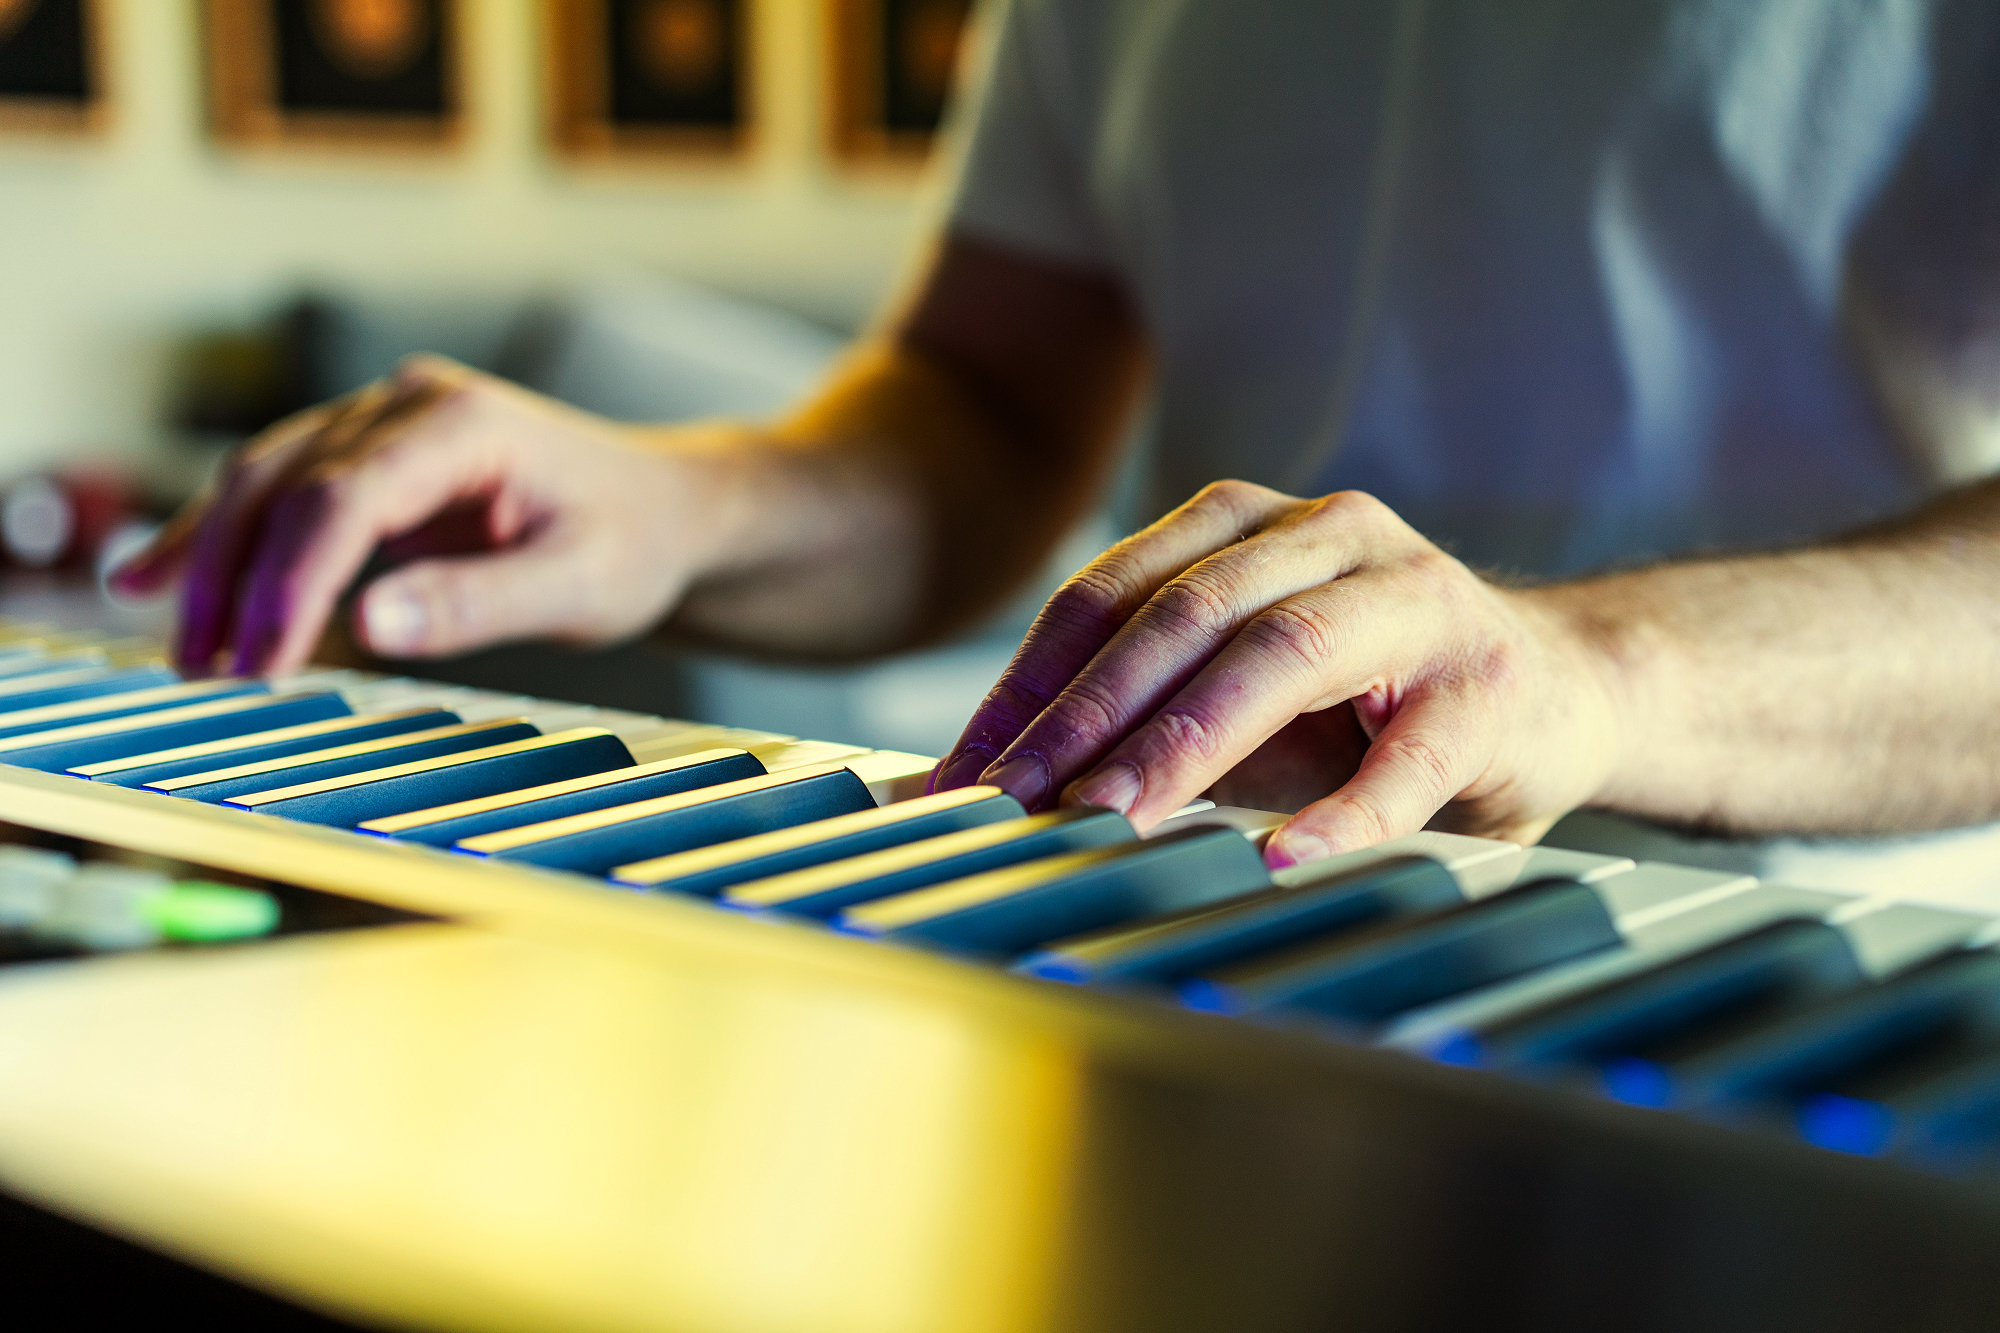 Christopher Composing Music